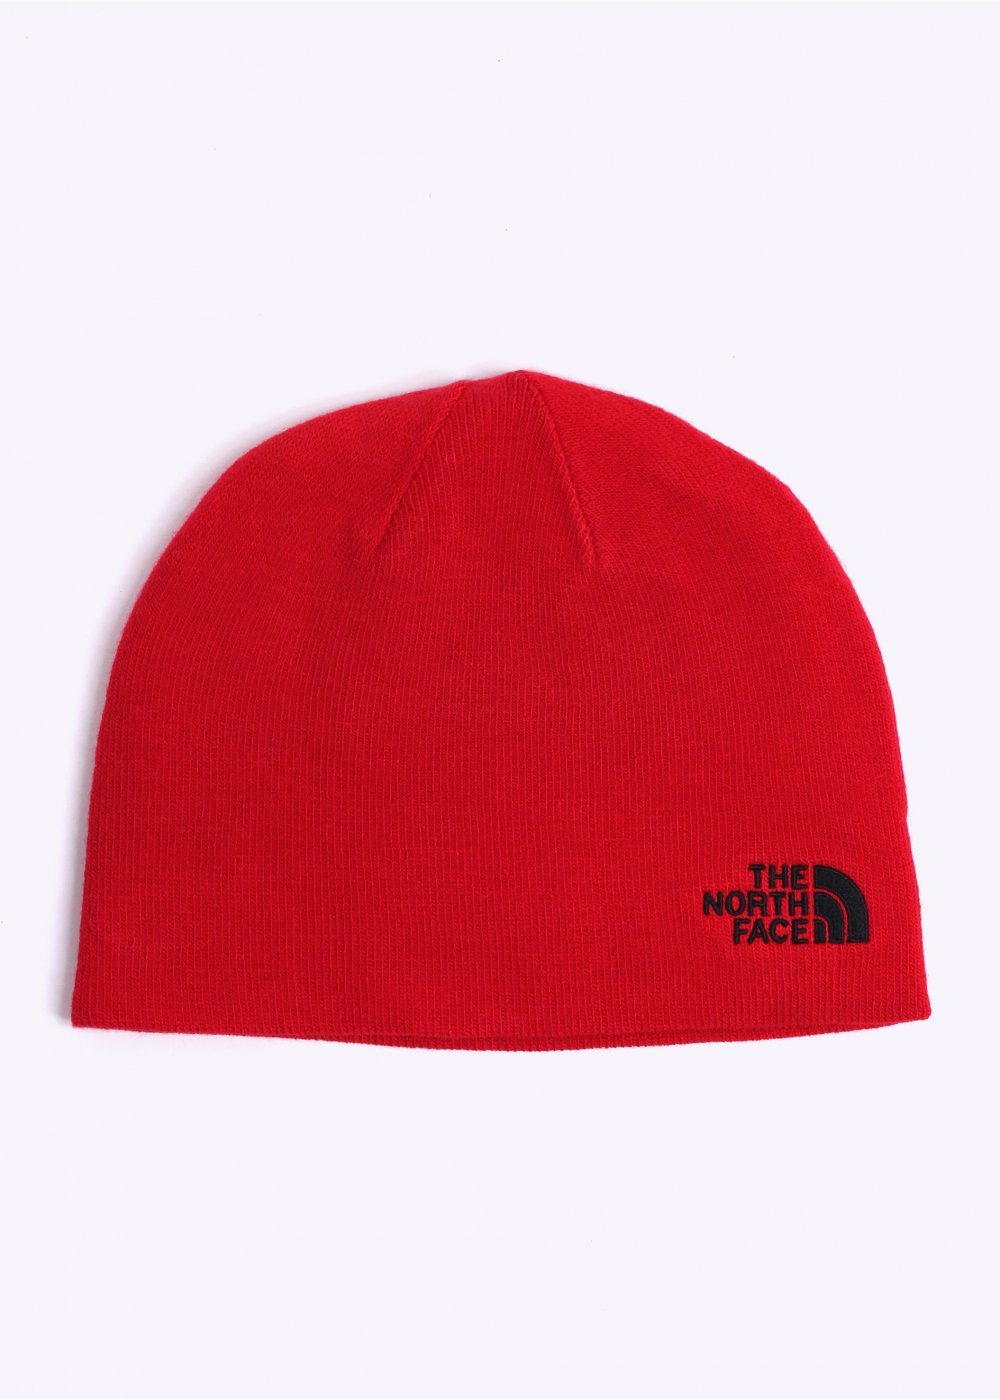 7db3587af47 The North Face Gateway Beanie - Red